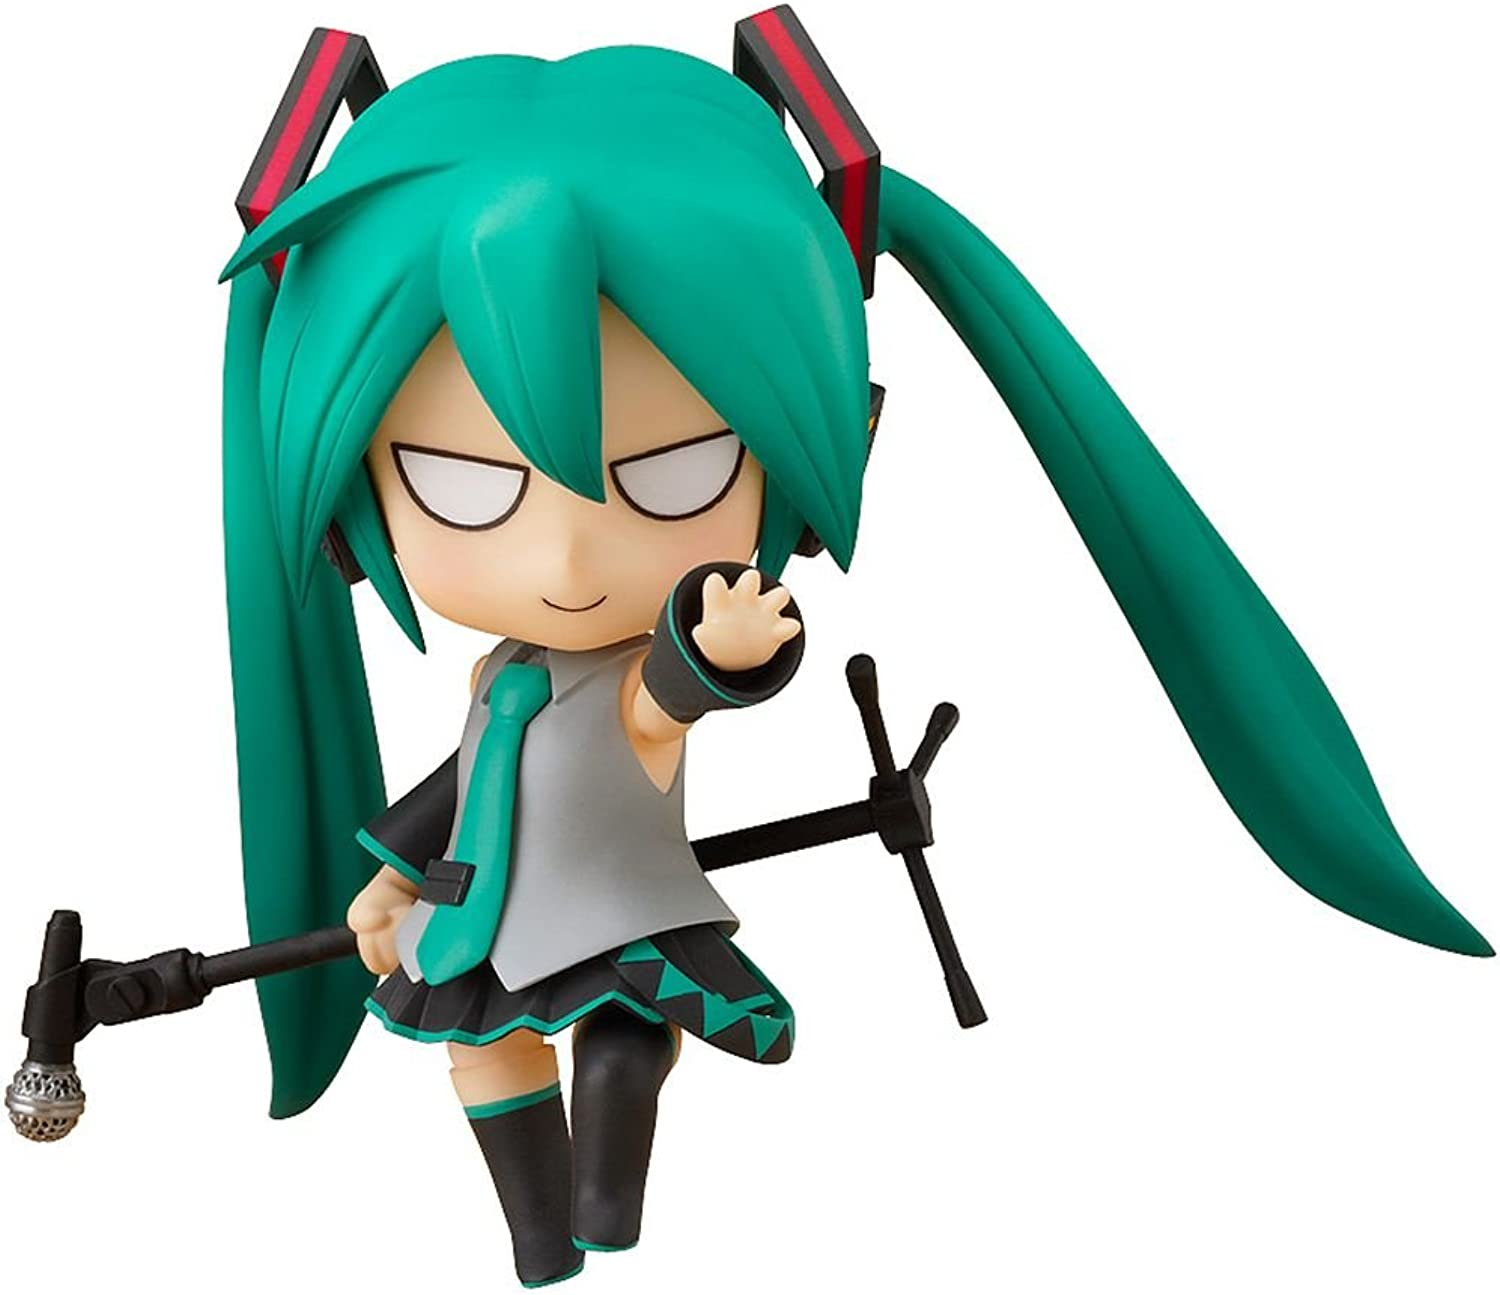 Good Smile Shuukan Hajimete no Hatsune Miku  Nendgoldid Action Figure